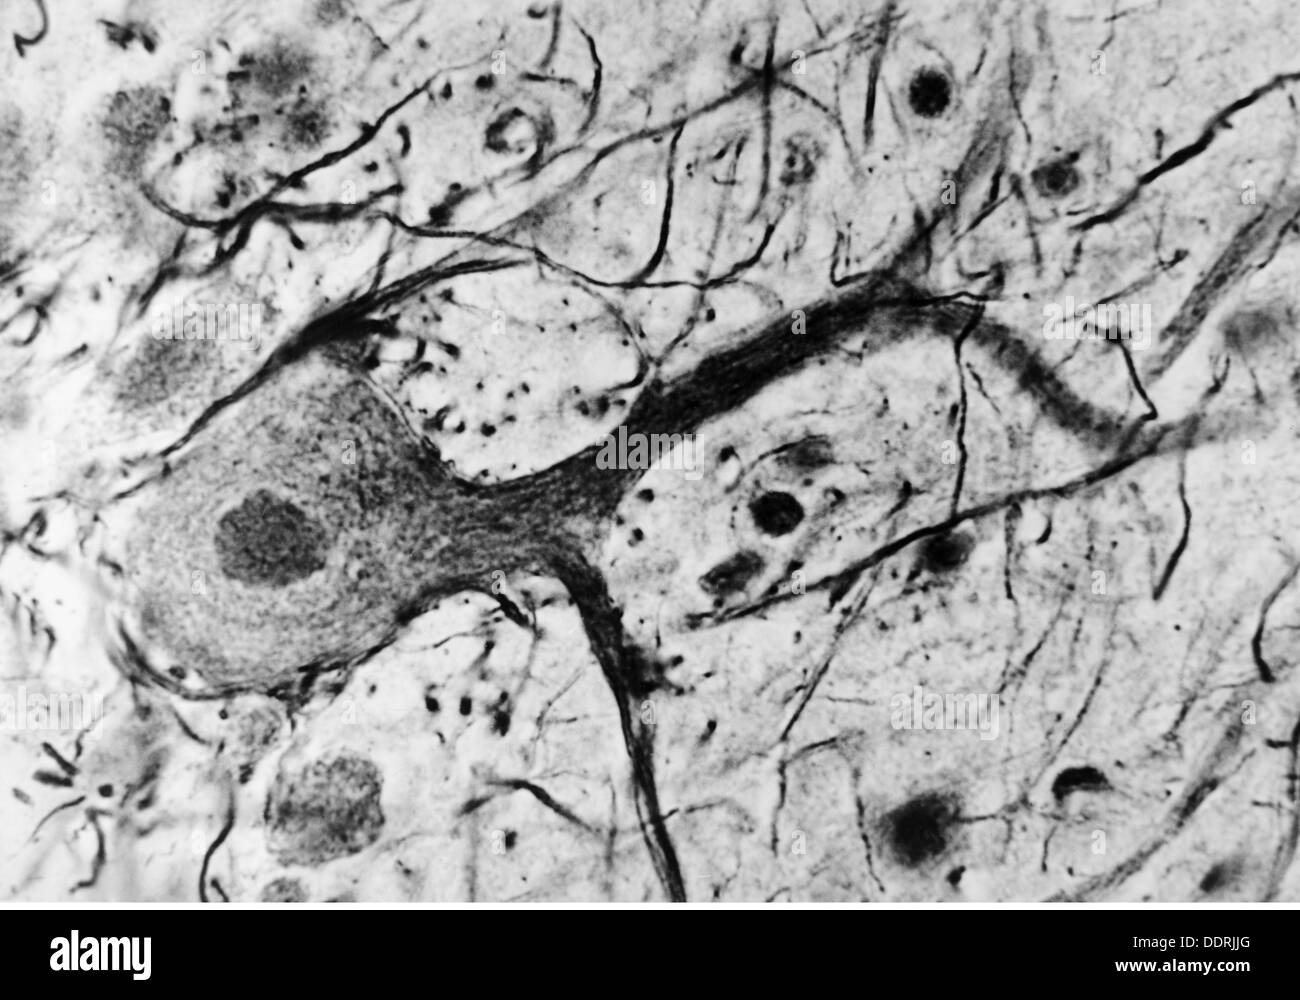 medicine, anatomy, cerebric / cranium, nerve cell of the human cerebellum, 20th century, 20th century, microscopy, nerve cell, nerve cells, neural, neuritic, nerve pathway, nerve tract, nerve pathways, nerve tracts, cerebellum, medicine, medicines, historic, historical, Additional-Rights-Clearences-NA - Stock Image